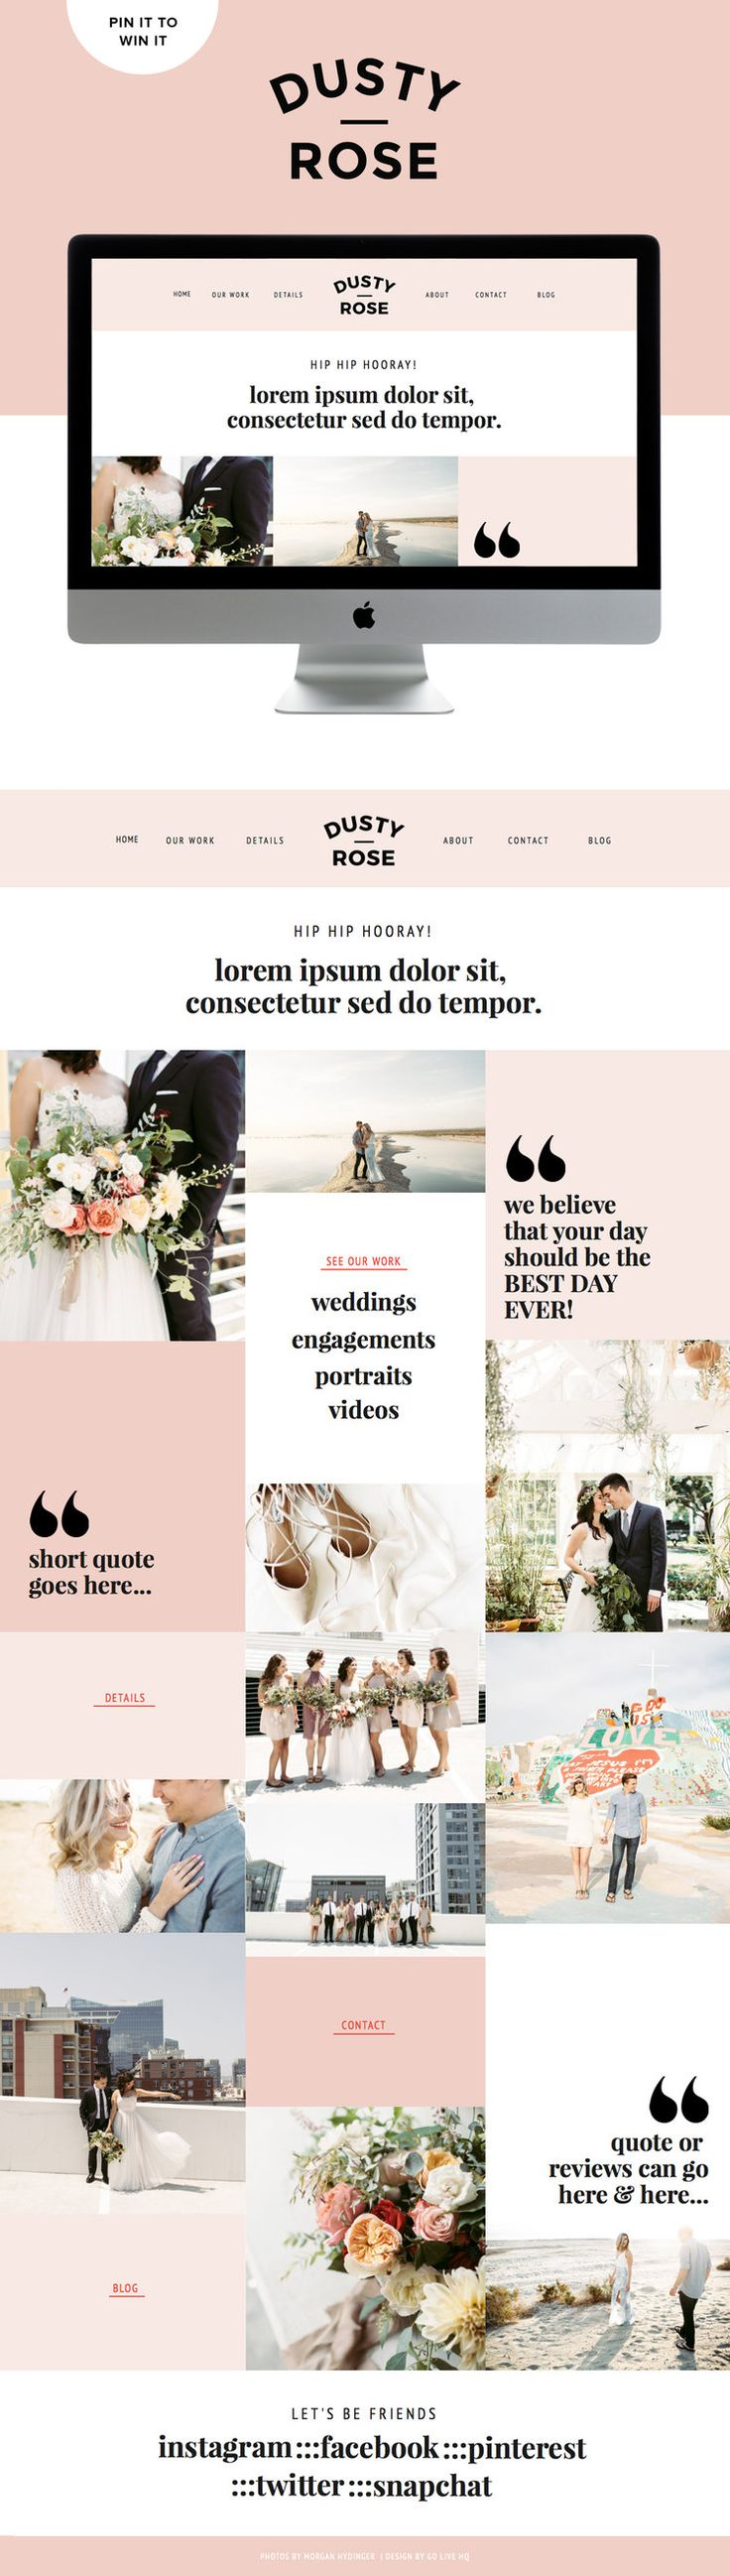 Loving this clean pretty squarespace website inspiration. Dusty Rose template by Go Live HQ. Hoping to win this template for free for my site!